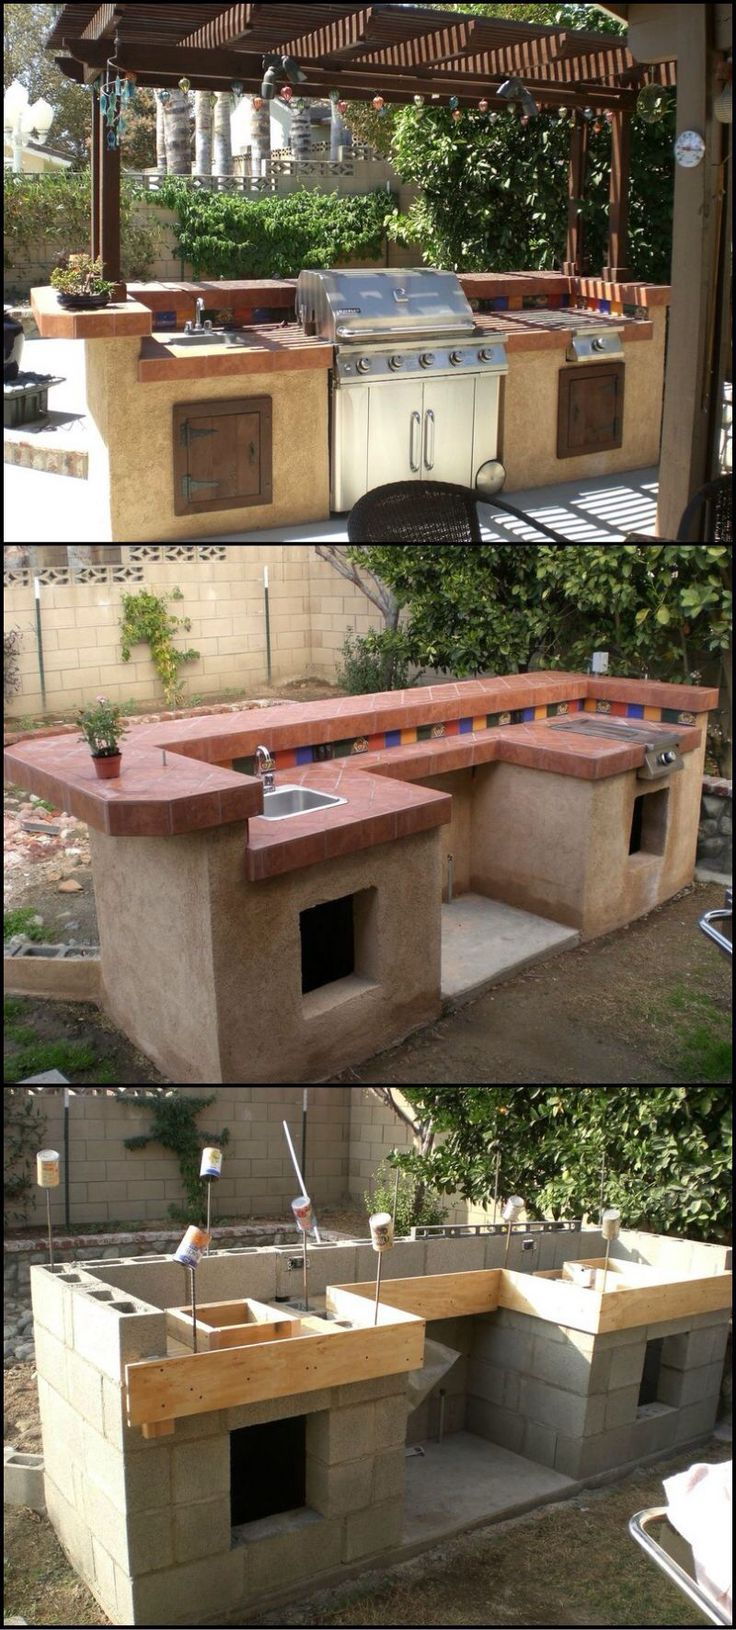 Making An Outdoor Kitchen 1000 Ideas About Build Outdoor Kitchen On Pinterest Diy Outdoor